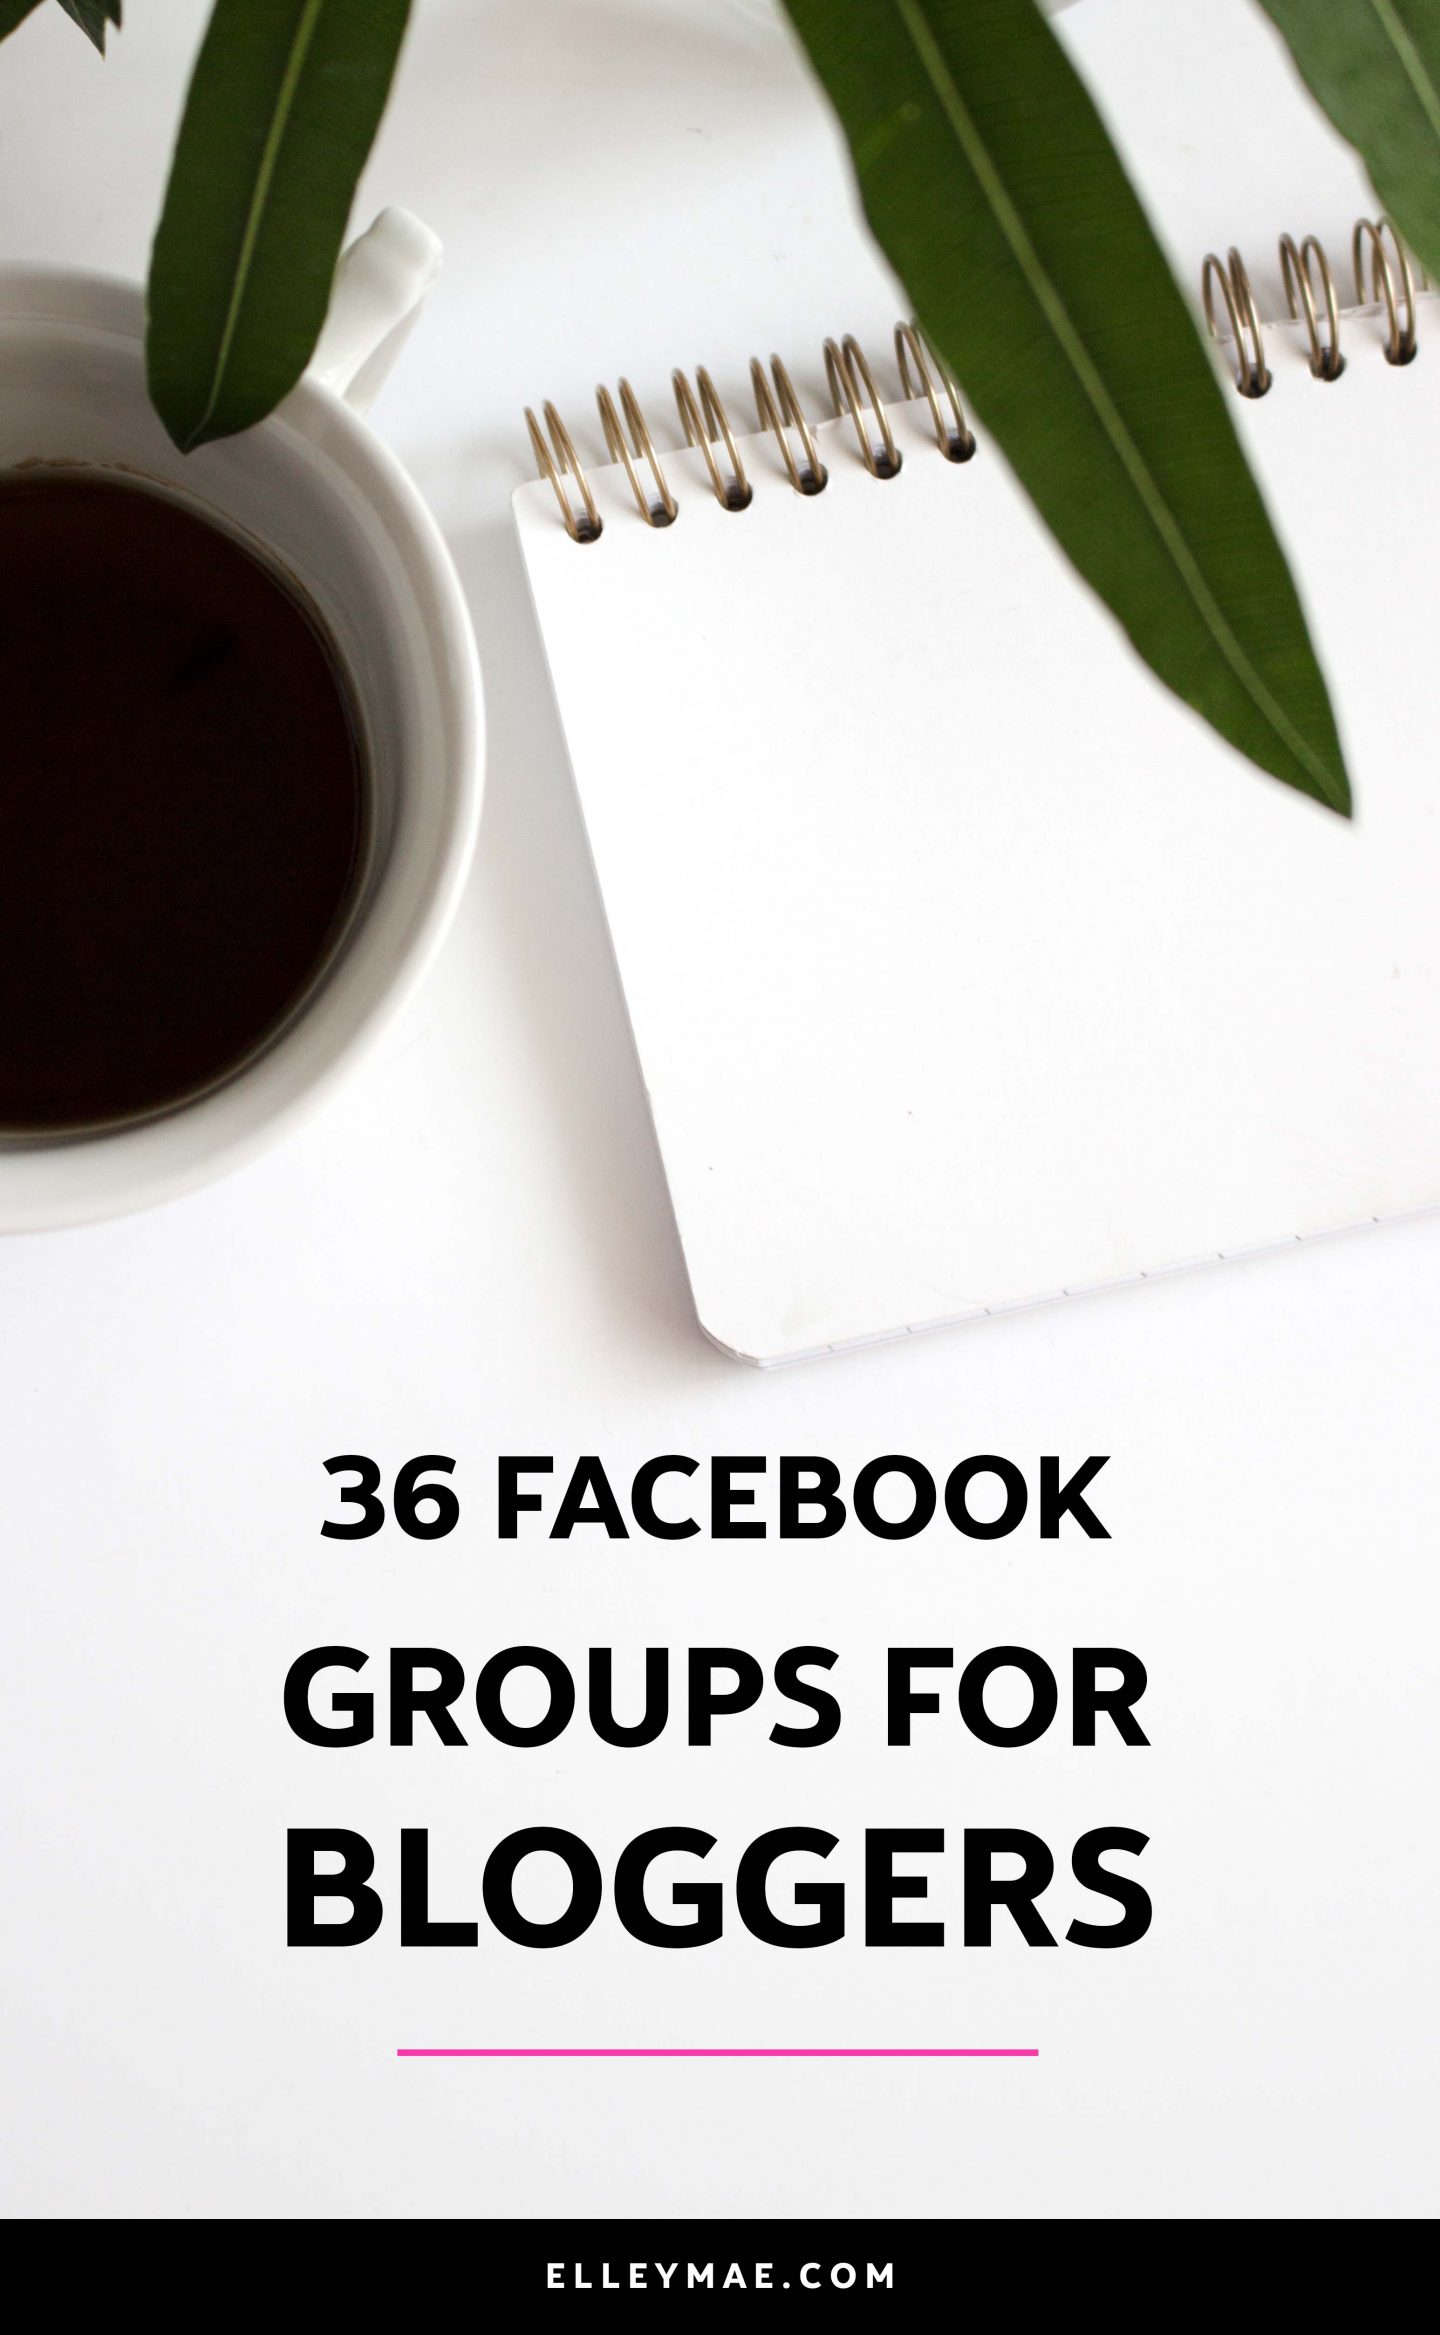 36 Of The Best Facebook Groups For Bloggers | Grow your blog by joining other like-minded creative entrepreneurs, social media influencers & bloggers in these 36 Facebook groups for bloggers. Promote your blog posts, learn new tricks & build relationships with others and take advantage of being an active member in these Facebook groups for bloggers. Your blog will thank you later! | Learn more at ElleyMae.com